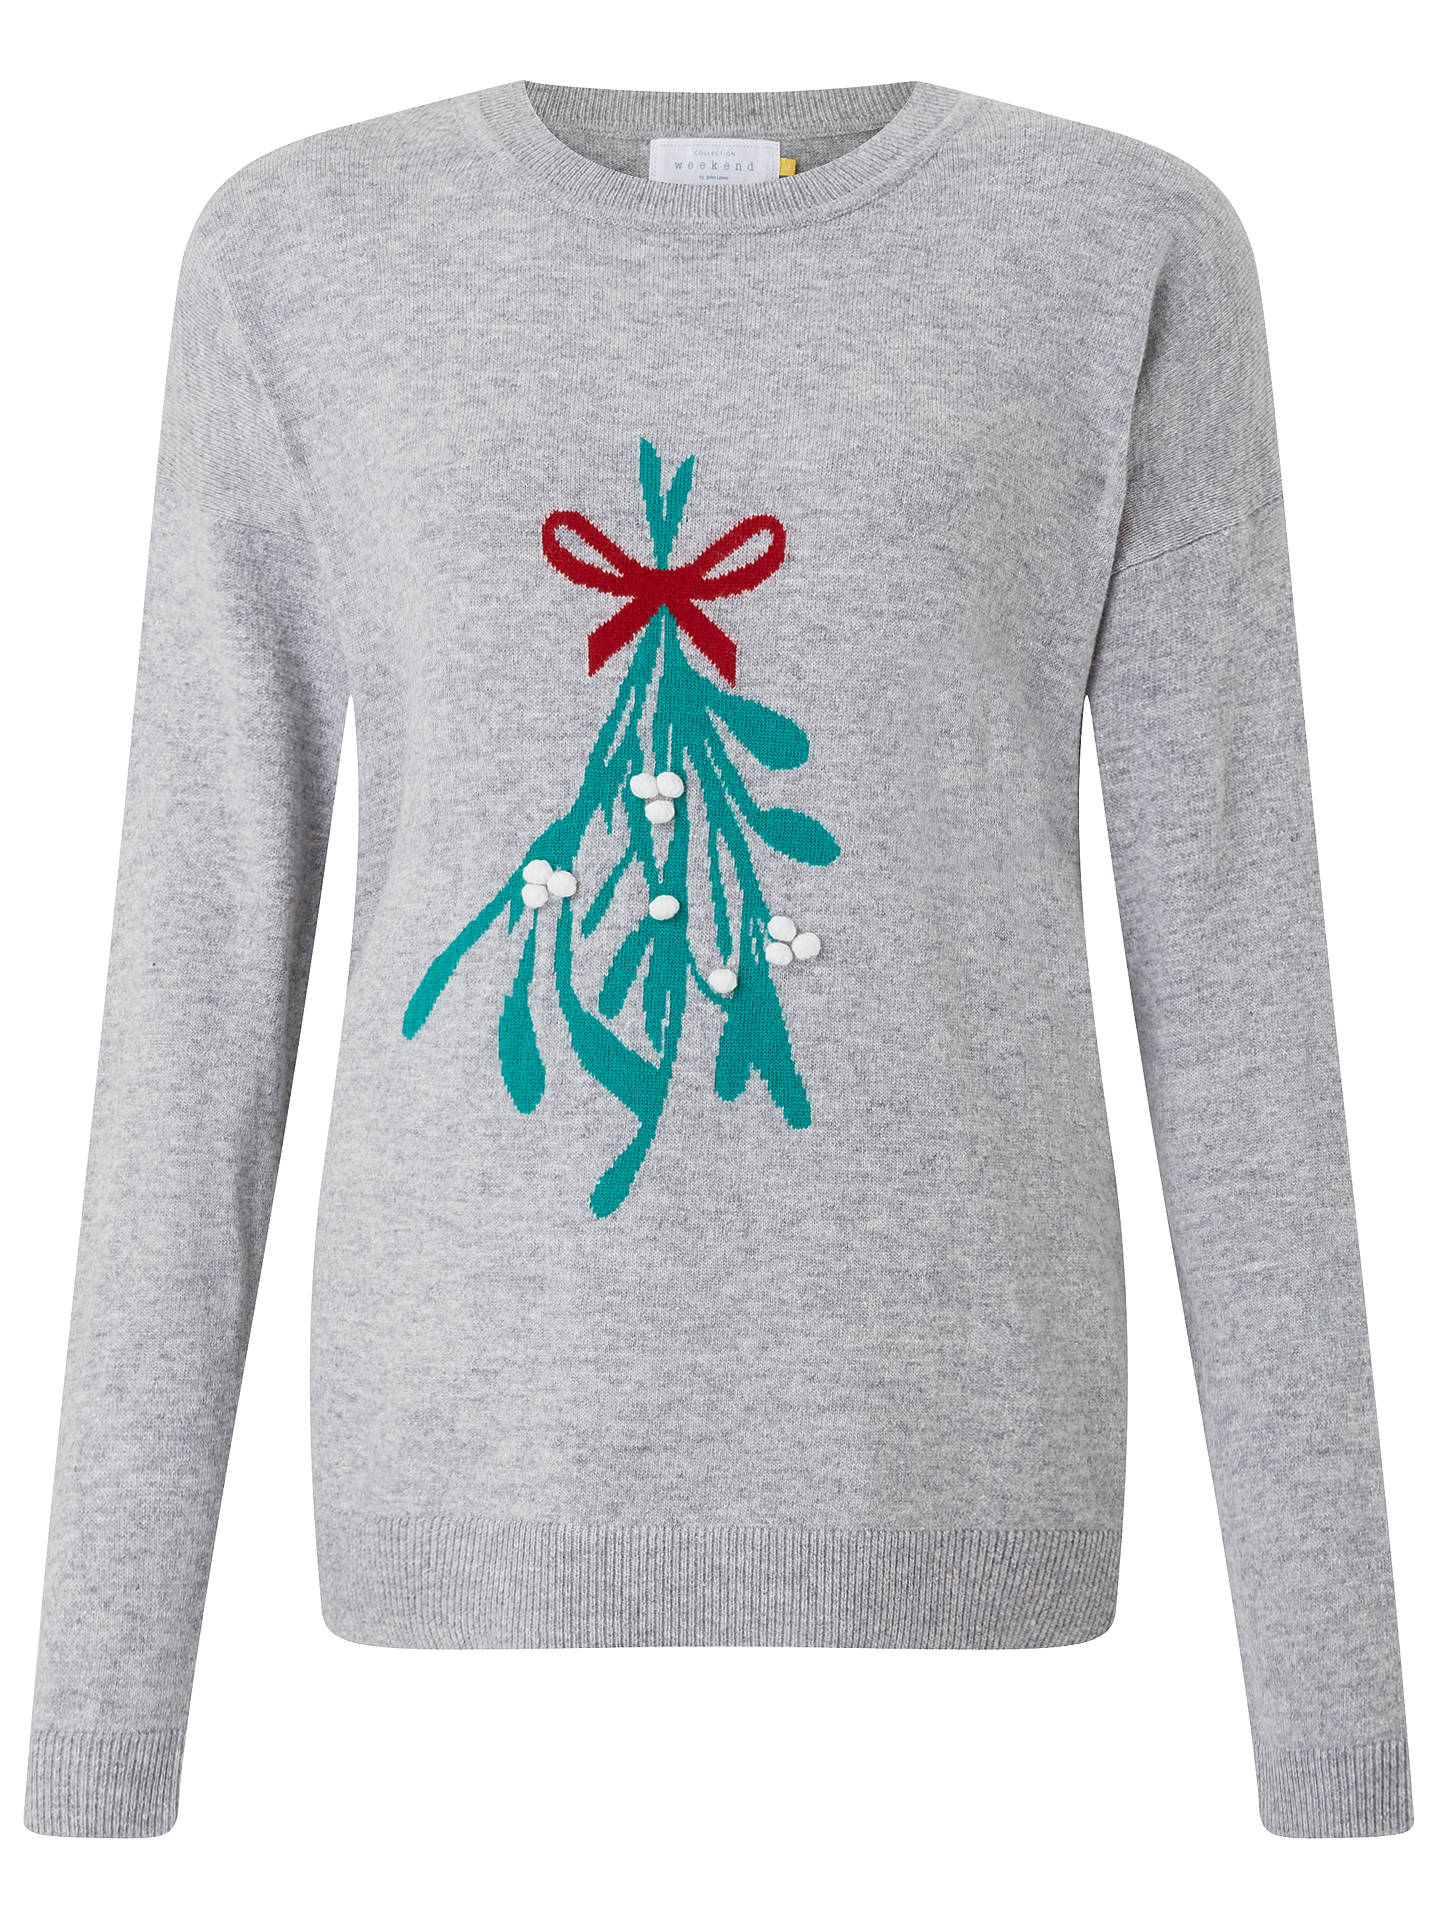 BuyCollection WEEKEND by John Lewis Mistletoe Intarsia Jumper, Grey, 8 Online at johnlewis.com